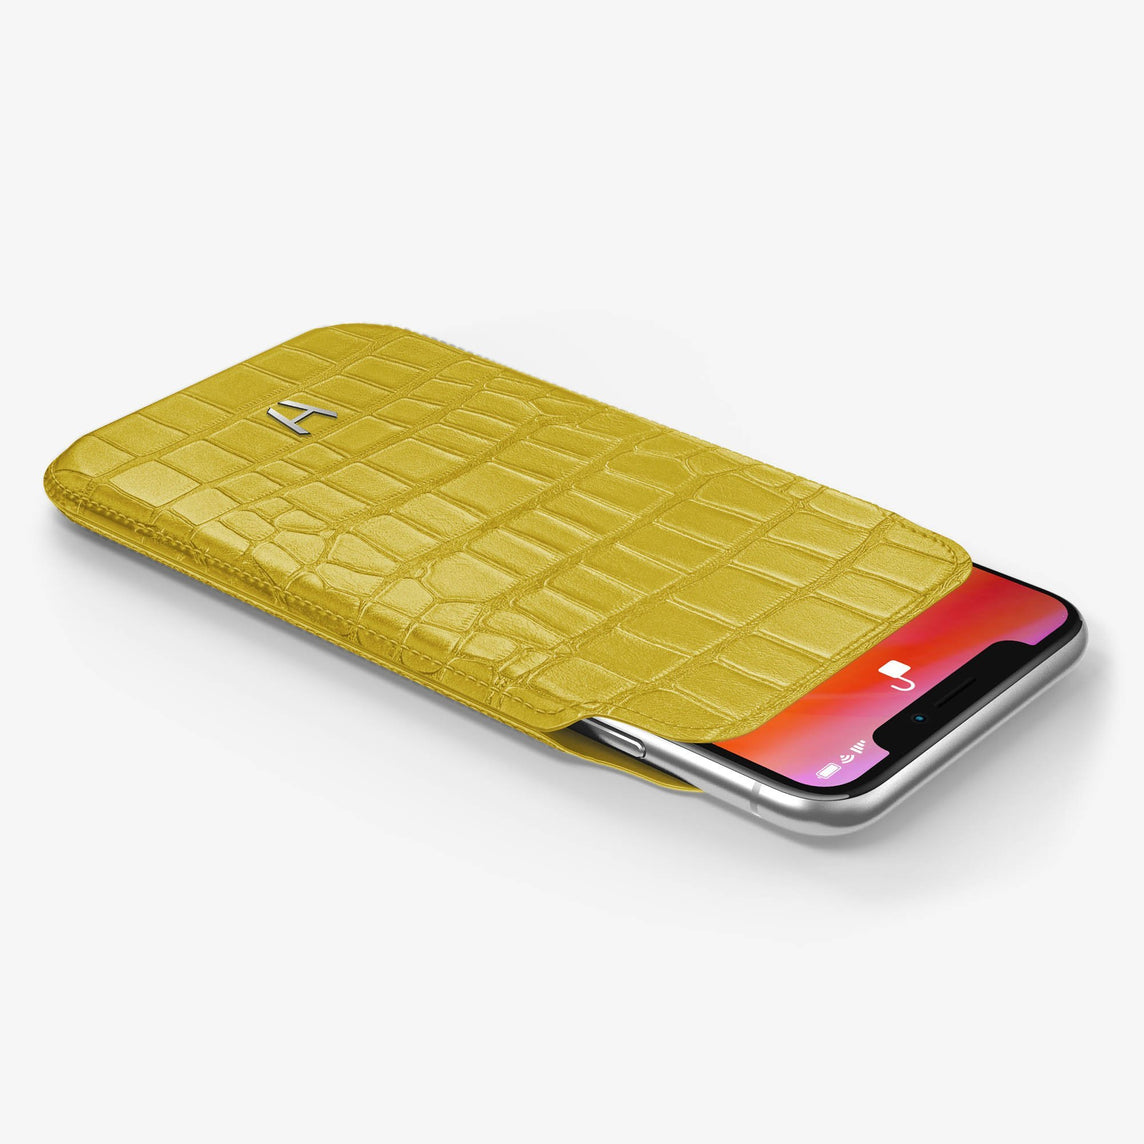 Alligator [iPhone Sleeve Case] [model:iphone-xr-case] [colour:yellow] [finishing:stainless-steel]